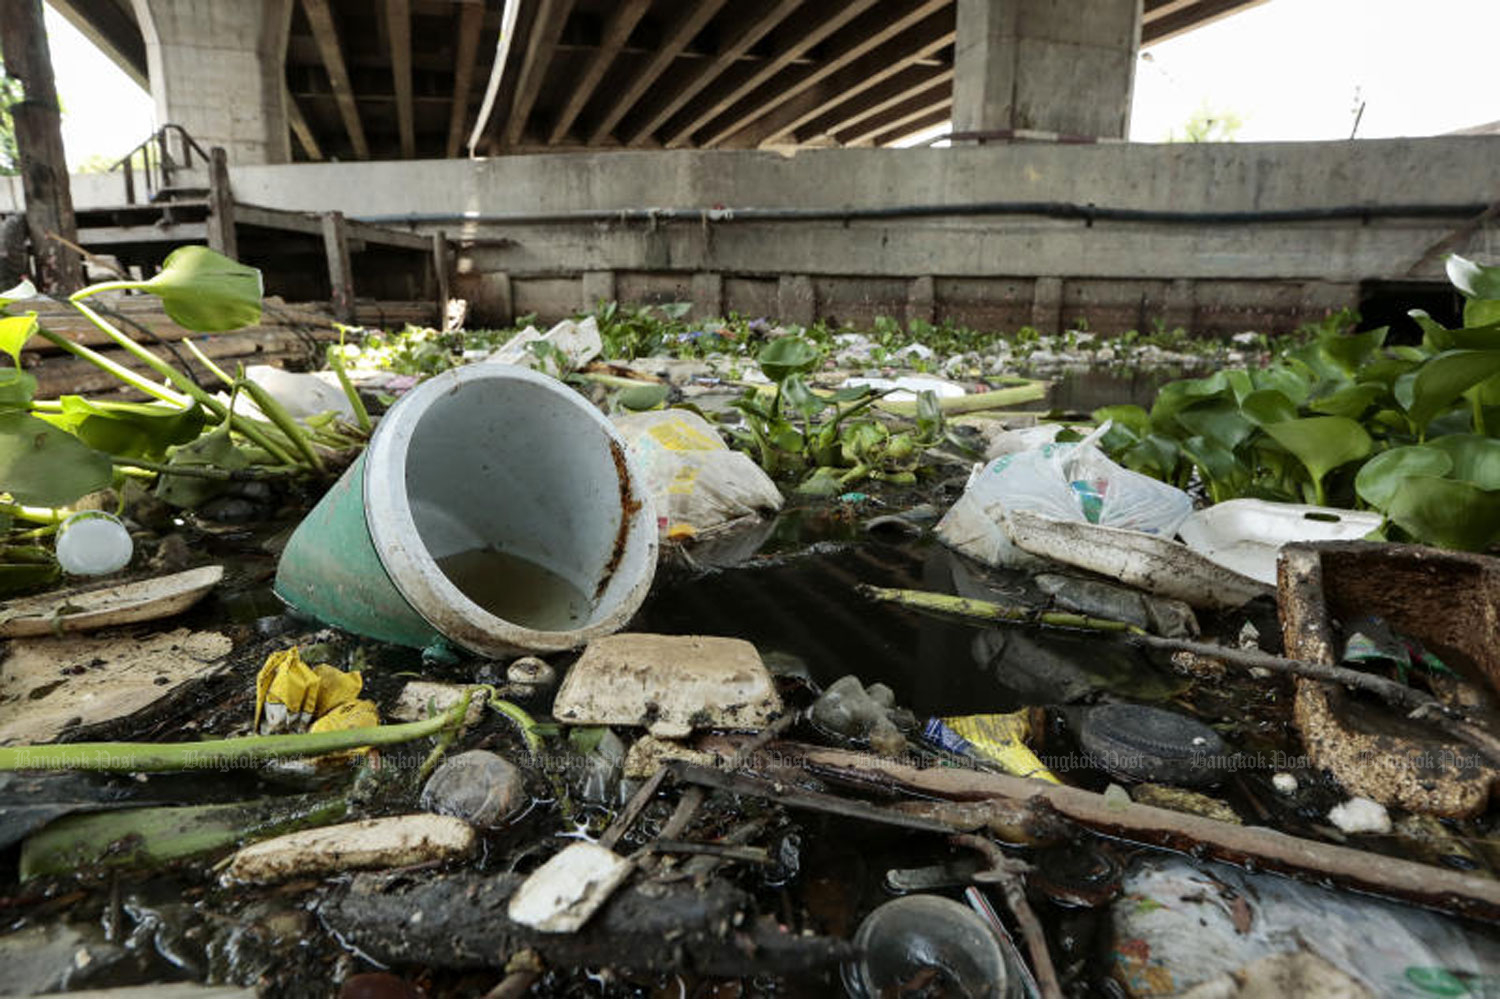 Masses of garbage float on Klong Lat Phrao underneath the Ram Intra expressway. Parts of the canal are filled with rubbish that has been blamed for clogging the city's flood water drainage system in the area. (Photo by Patipat Janthong)